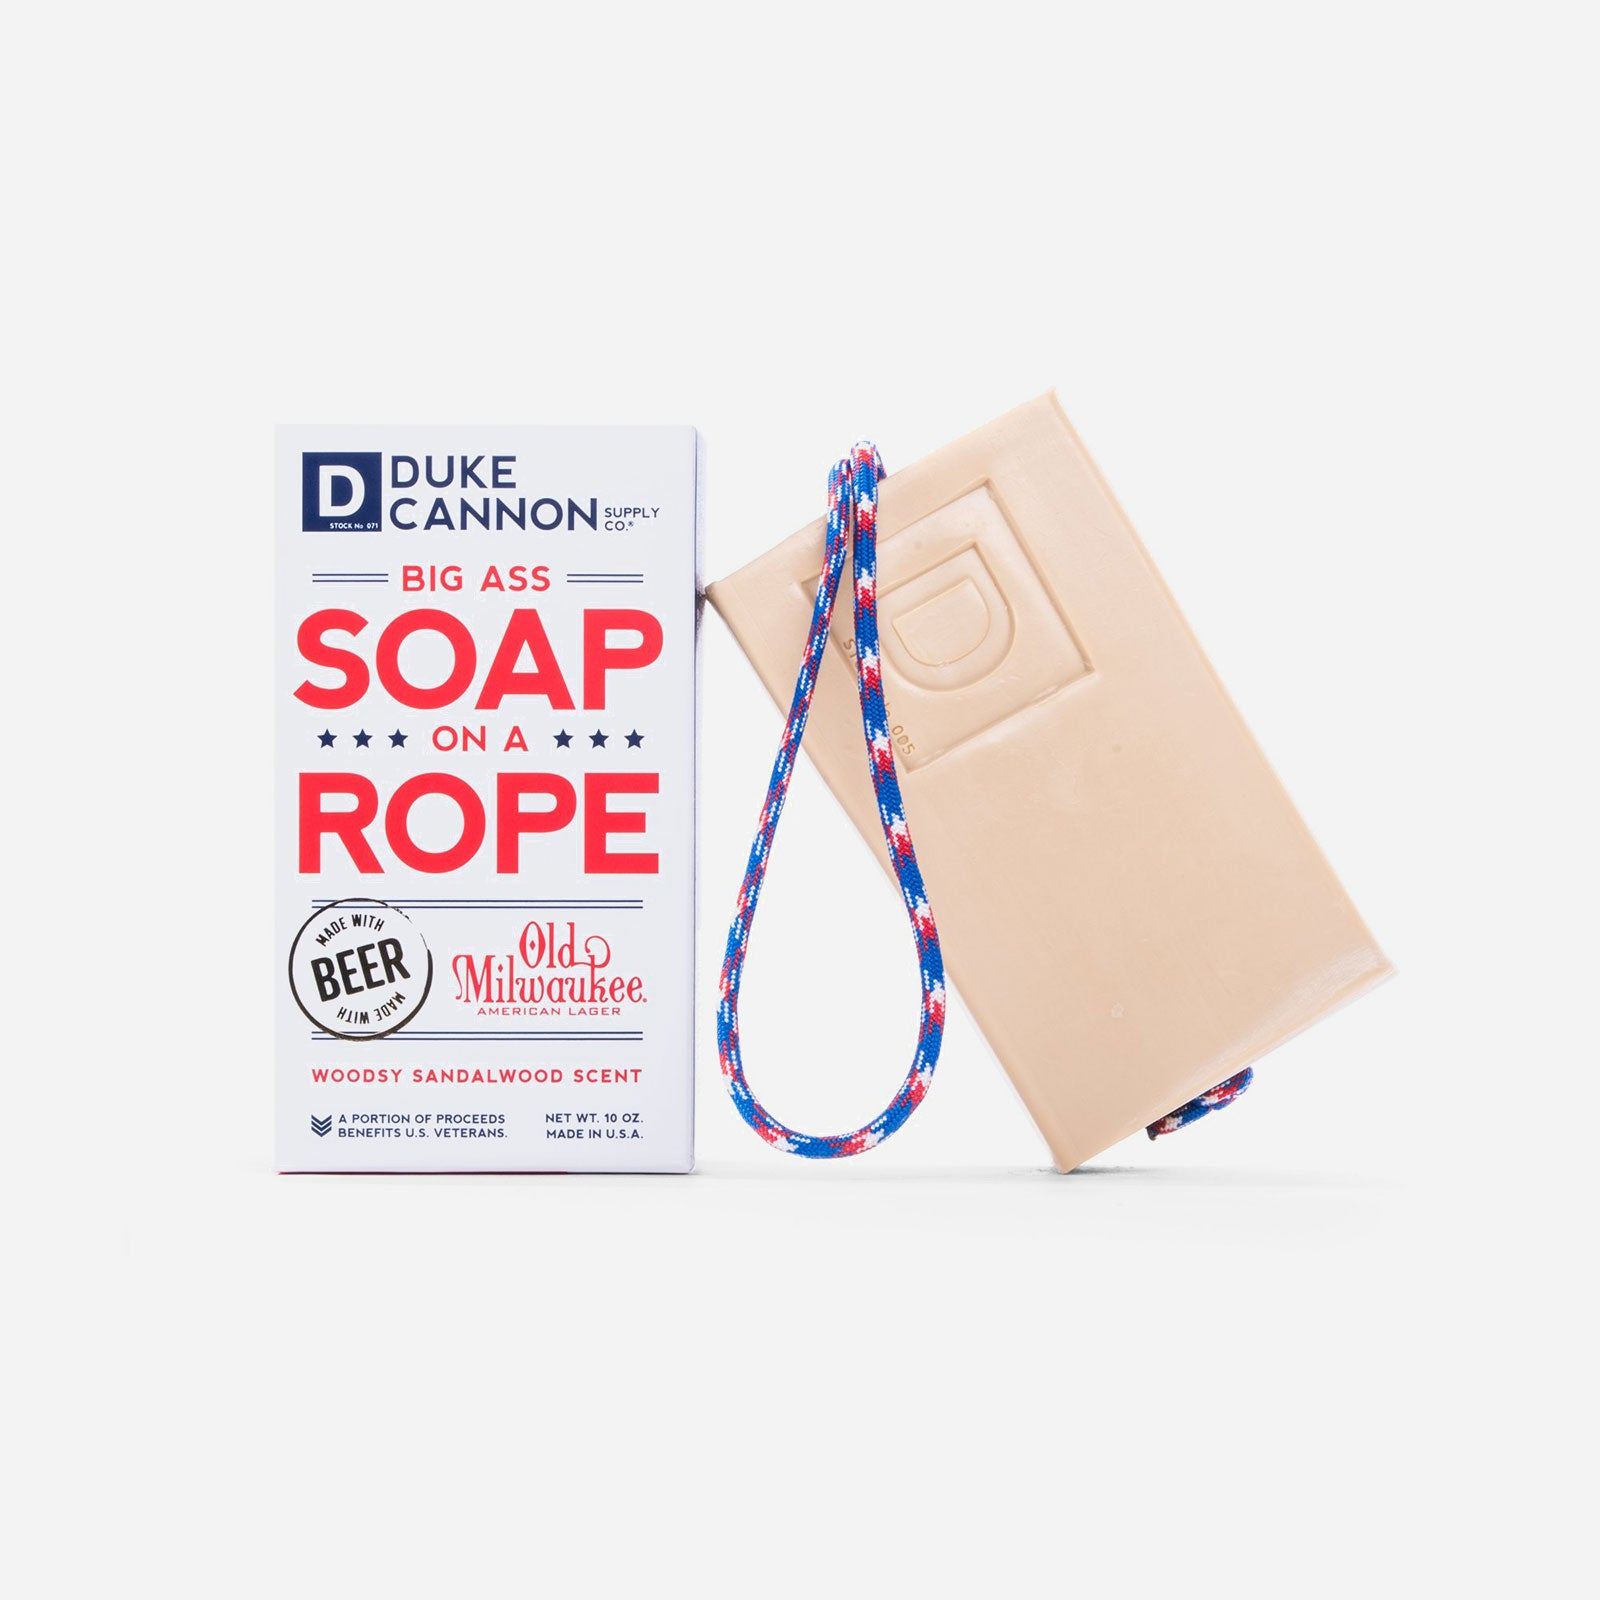 Duke Cannon Soap On A Rope - Frances Valentine